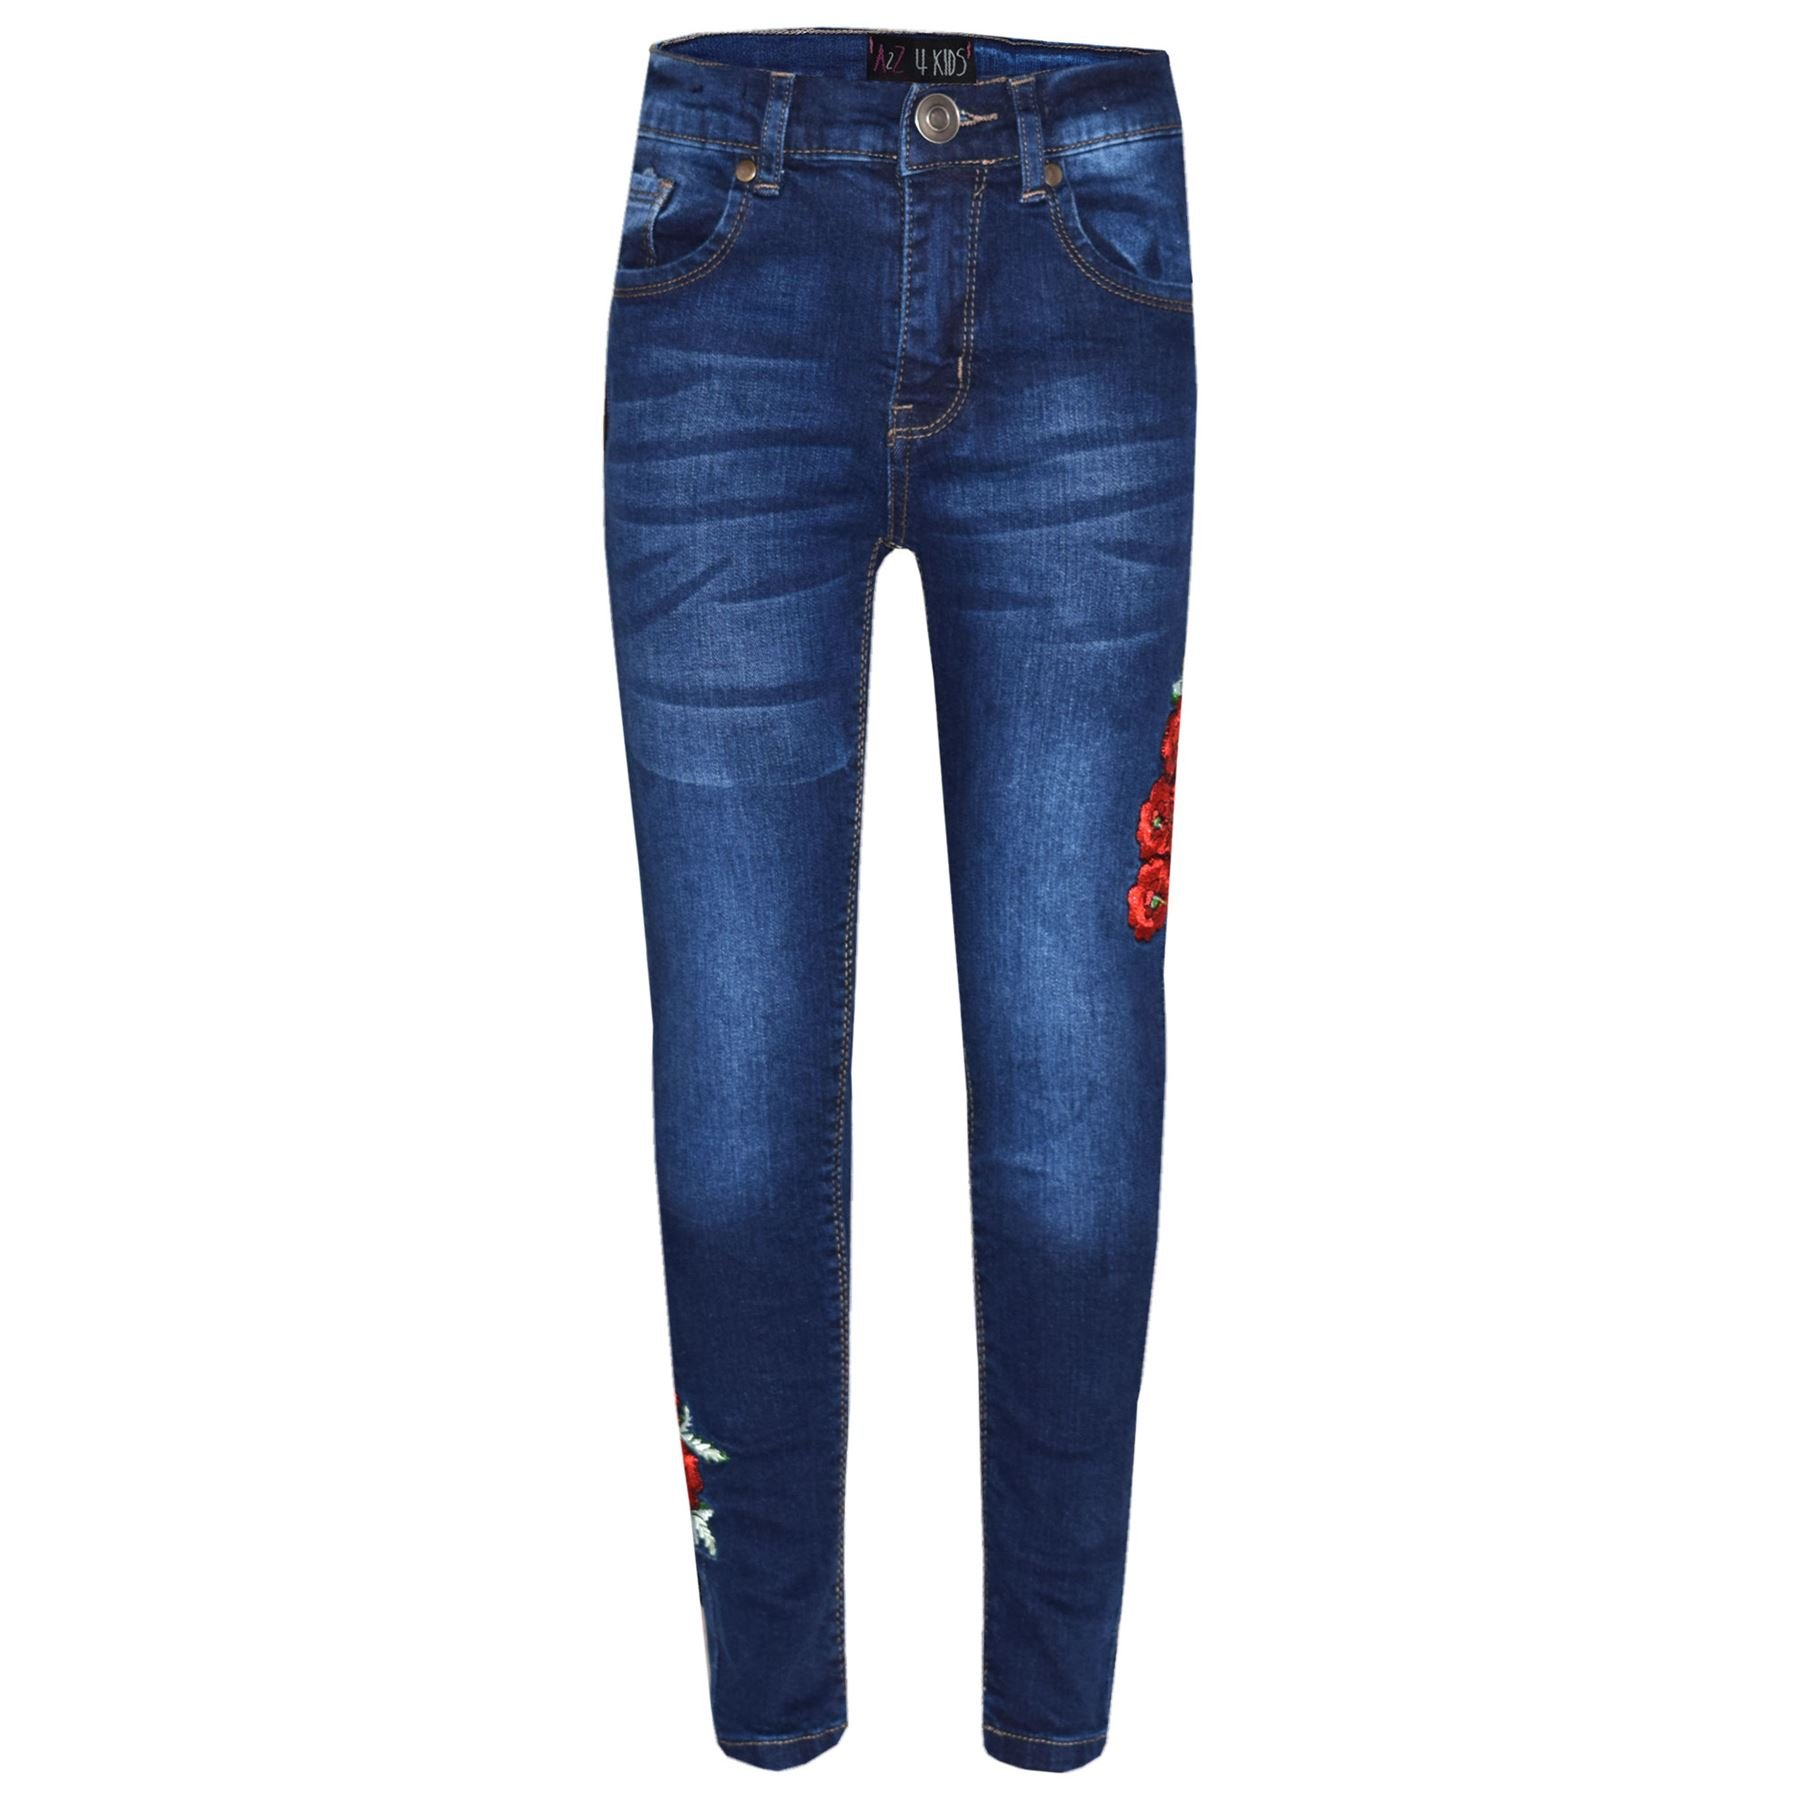 Girls Stretchy Jeans Kids Ripped Denim Pants Trousers Jeggings Age 5-13 Years